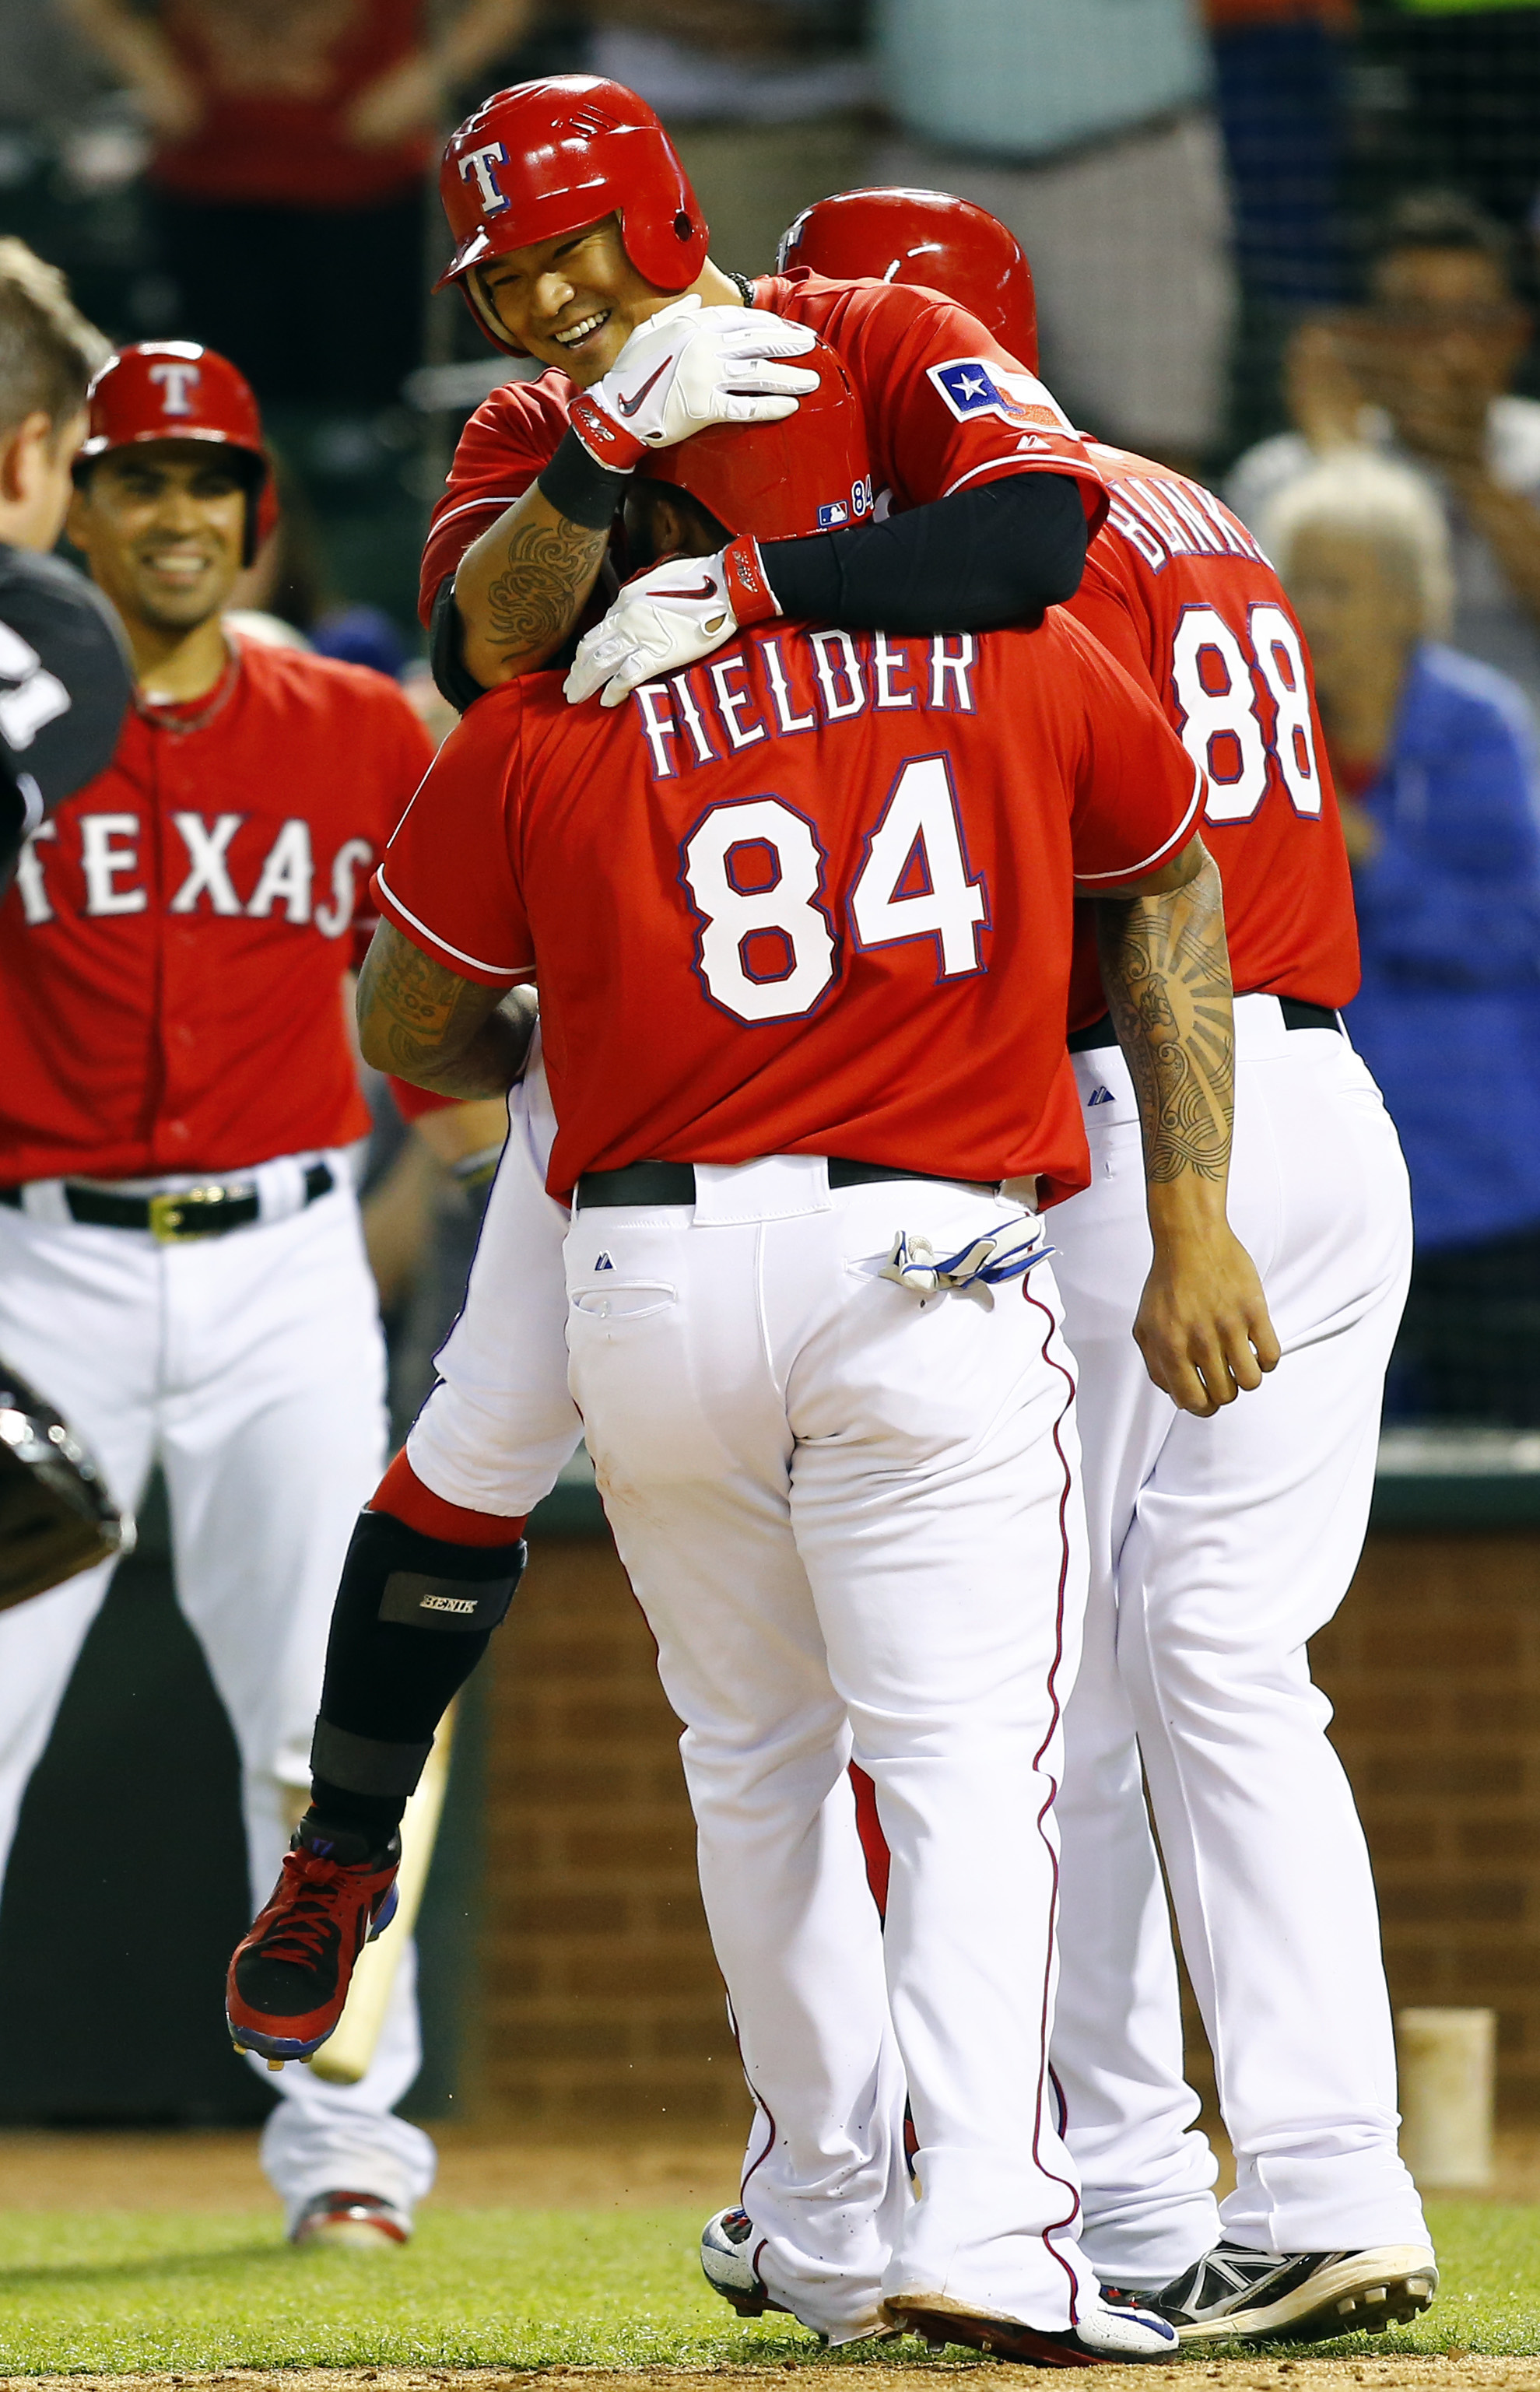 Texas Rangers' Prince Fielder (84) lifts Shin-Soo Choo after Choo hit a three-run home run to tie the game against the Oakland Athletics in the eighth inning of a baseball game Saturday, May 2, 2015, in Arlington, Texas. (AP Photo/Mike Stone)